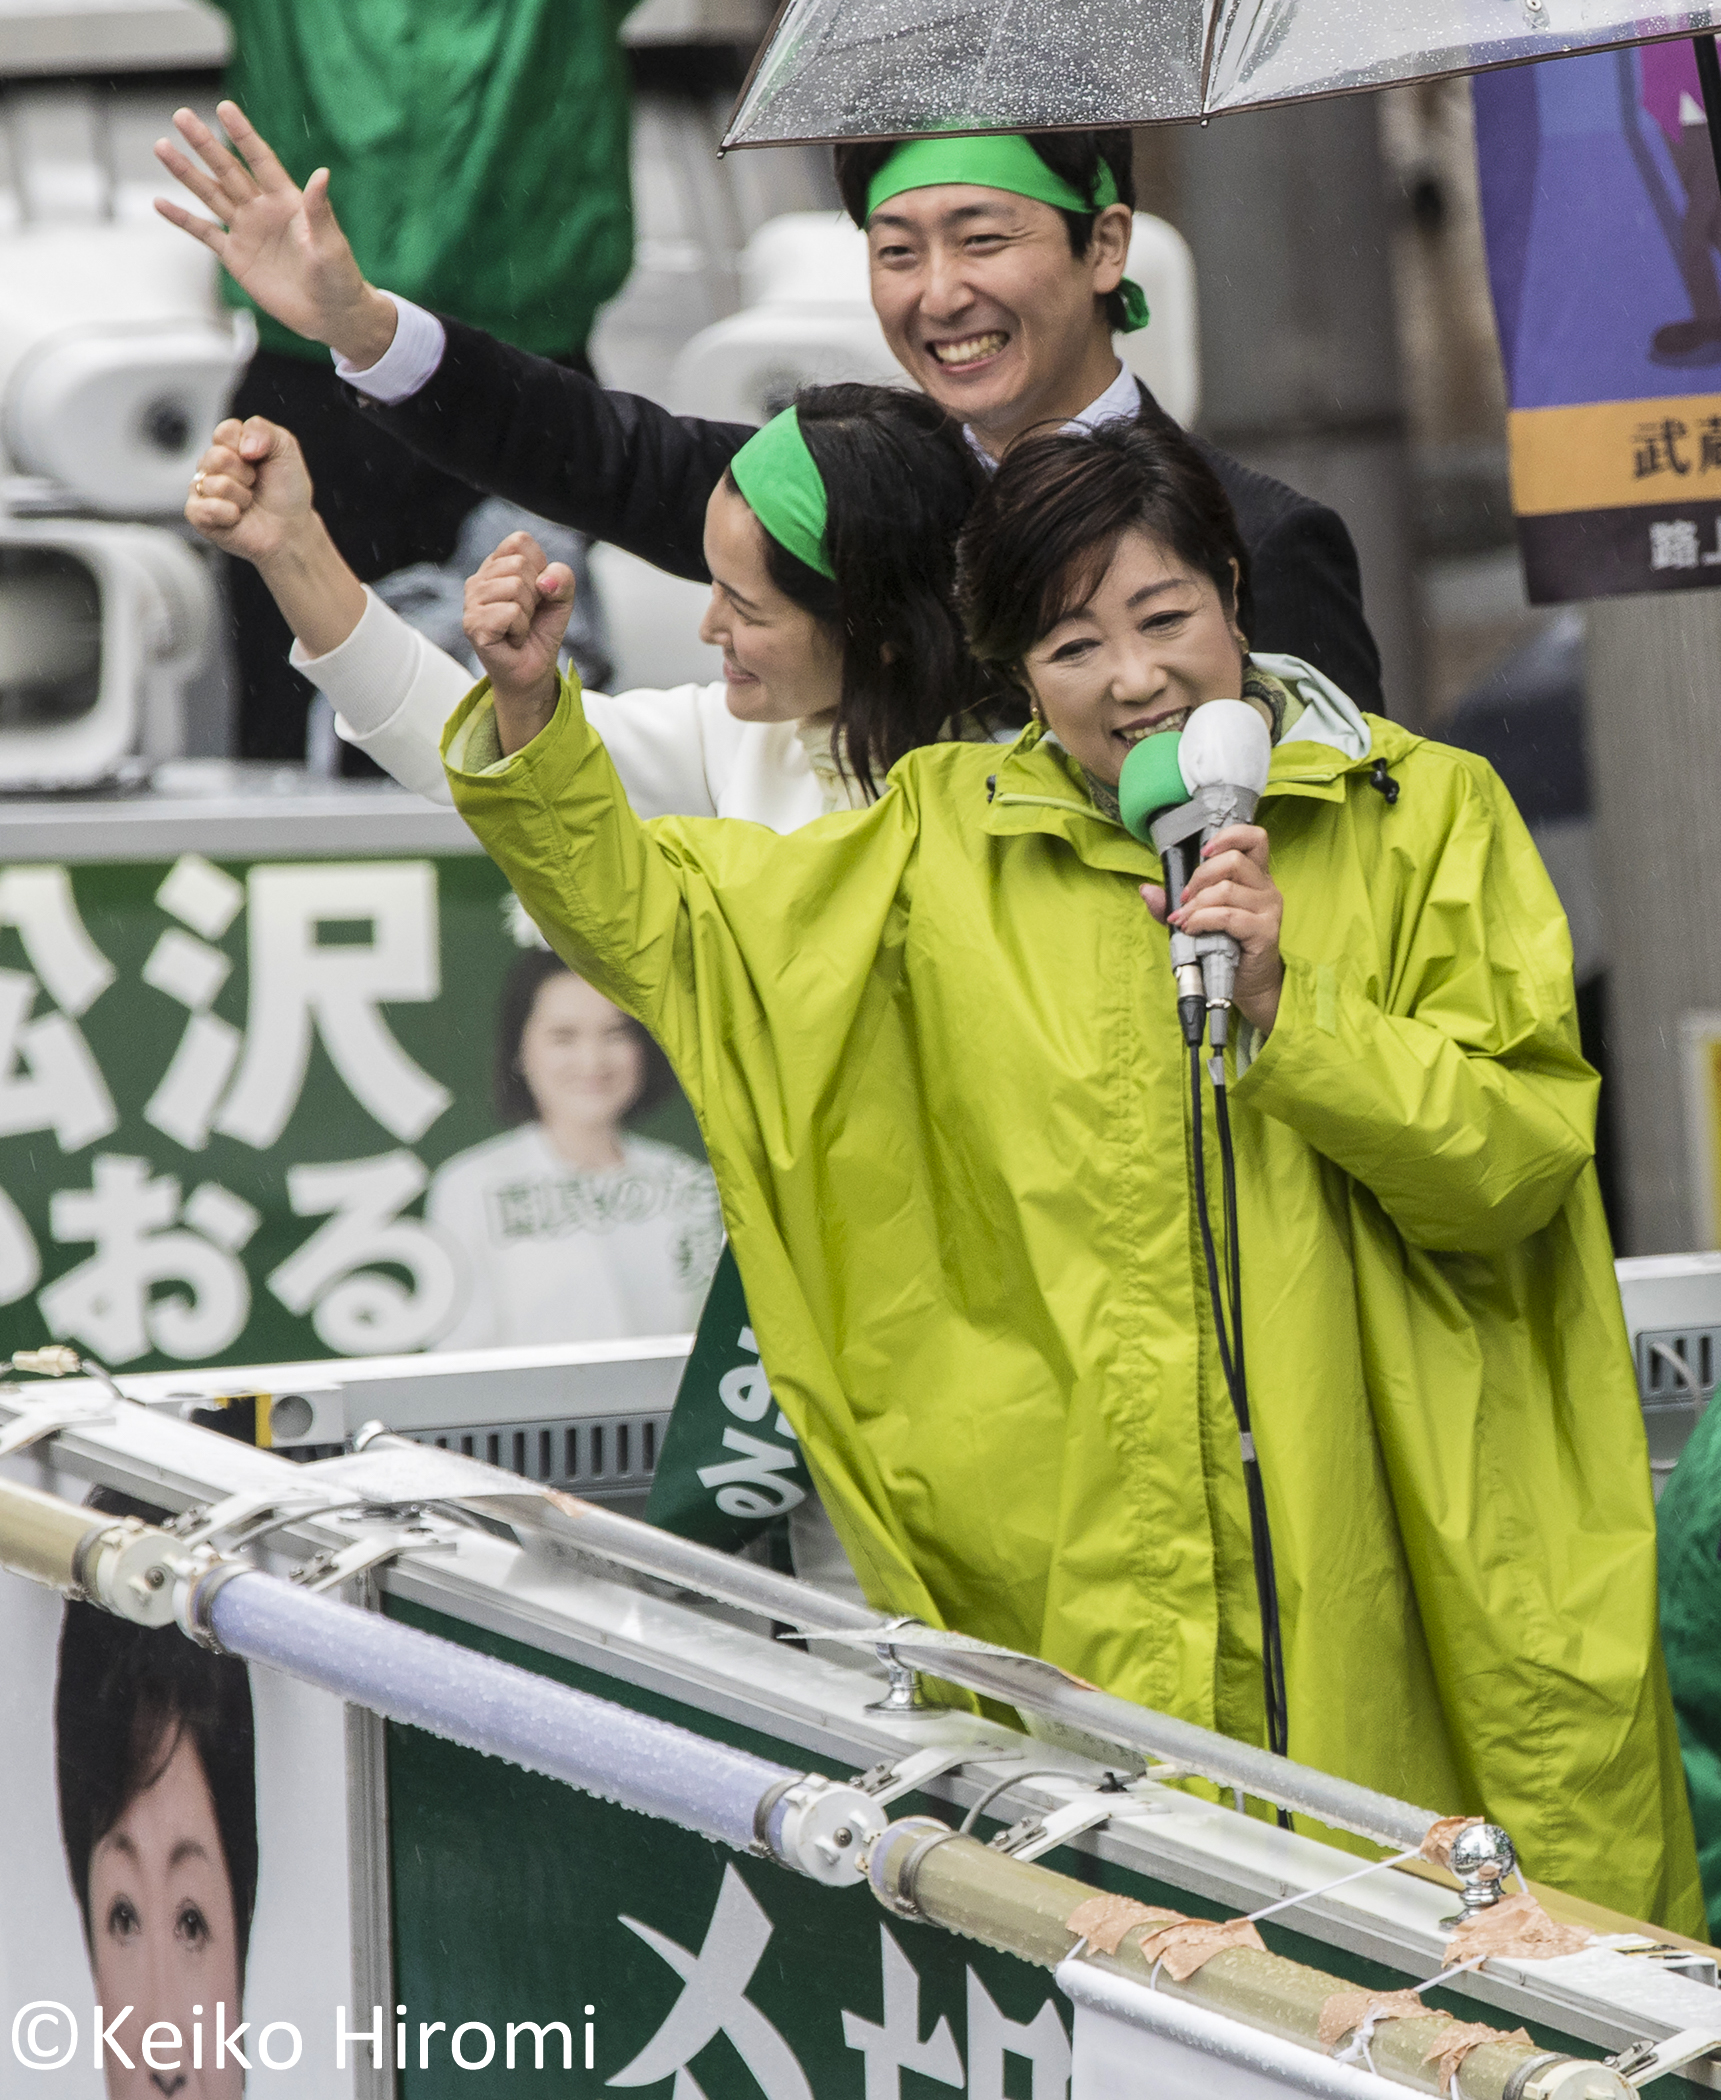 Yuriko Koike, Tokyo Governor and leader of Party of Hope, campaigning in Shinjuku, Tokyo, Japan on October 15, 2017.